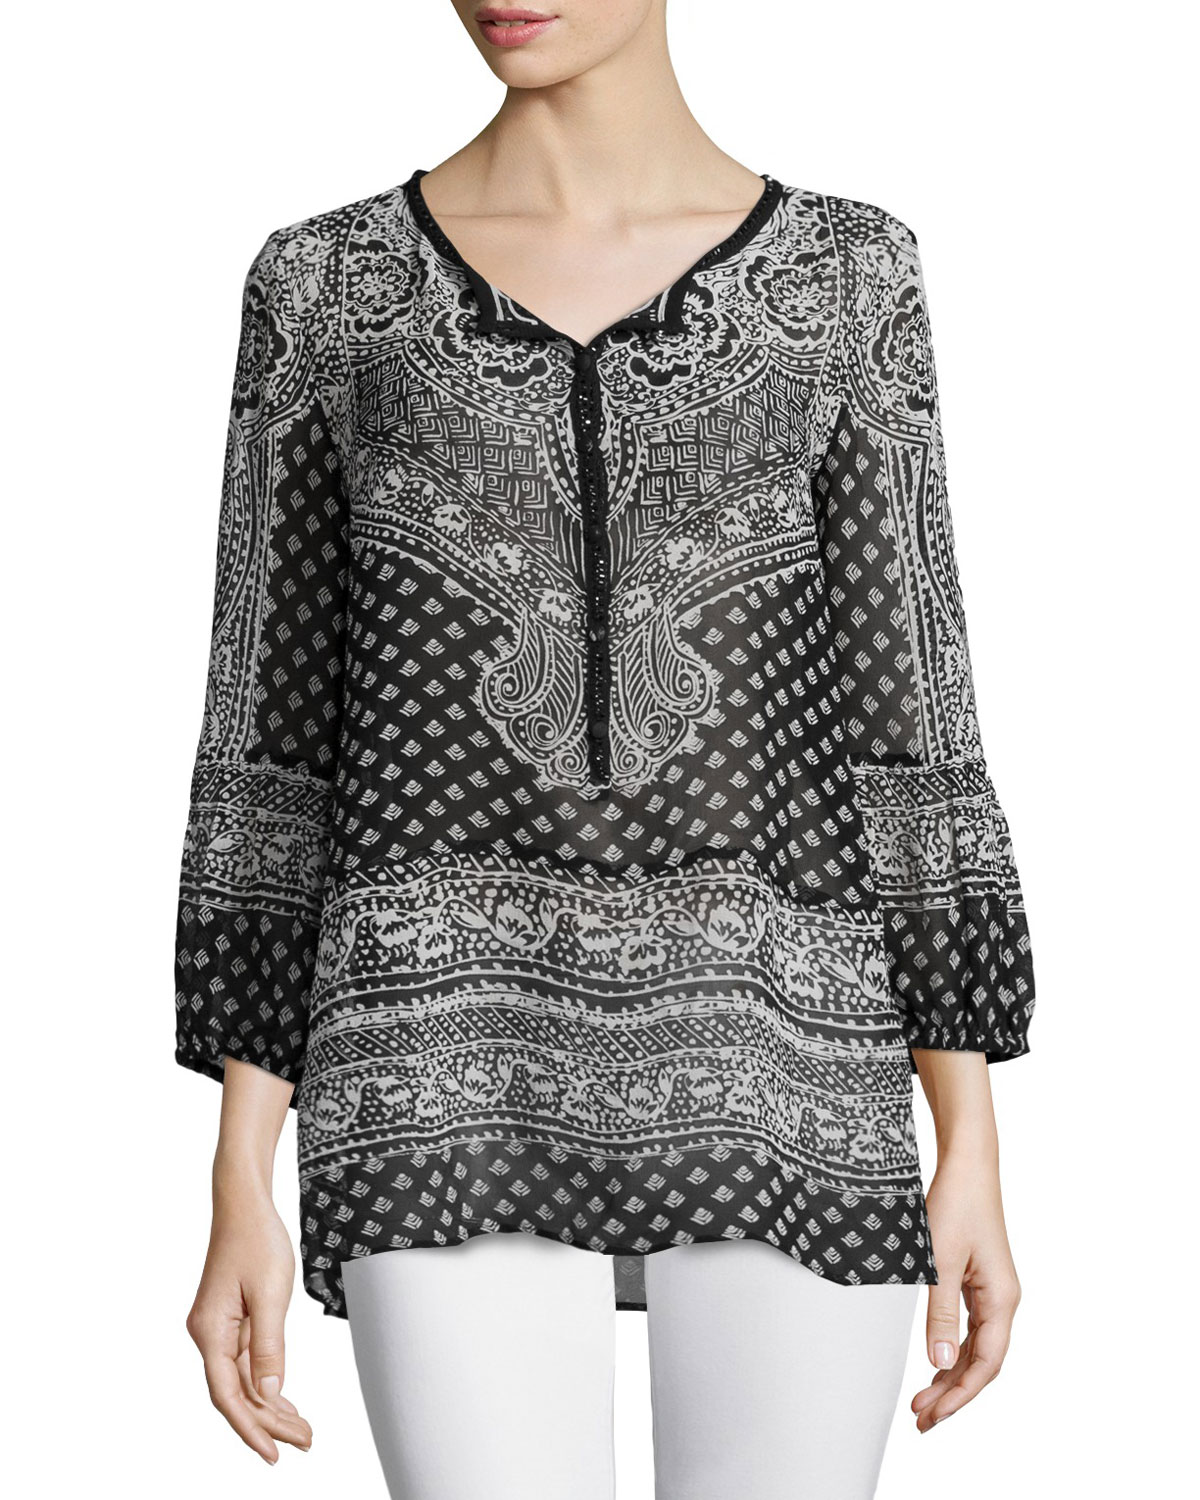 Calypso St. Barth Moi Long-Sleeve Printed Top, Black, Size: XS